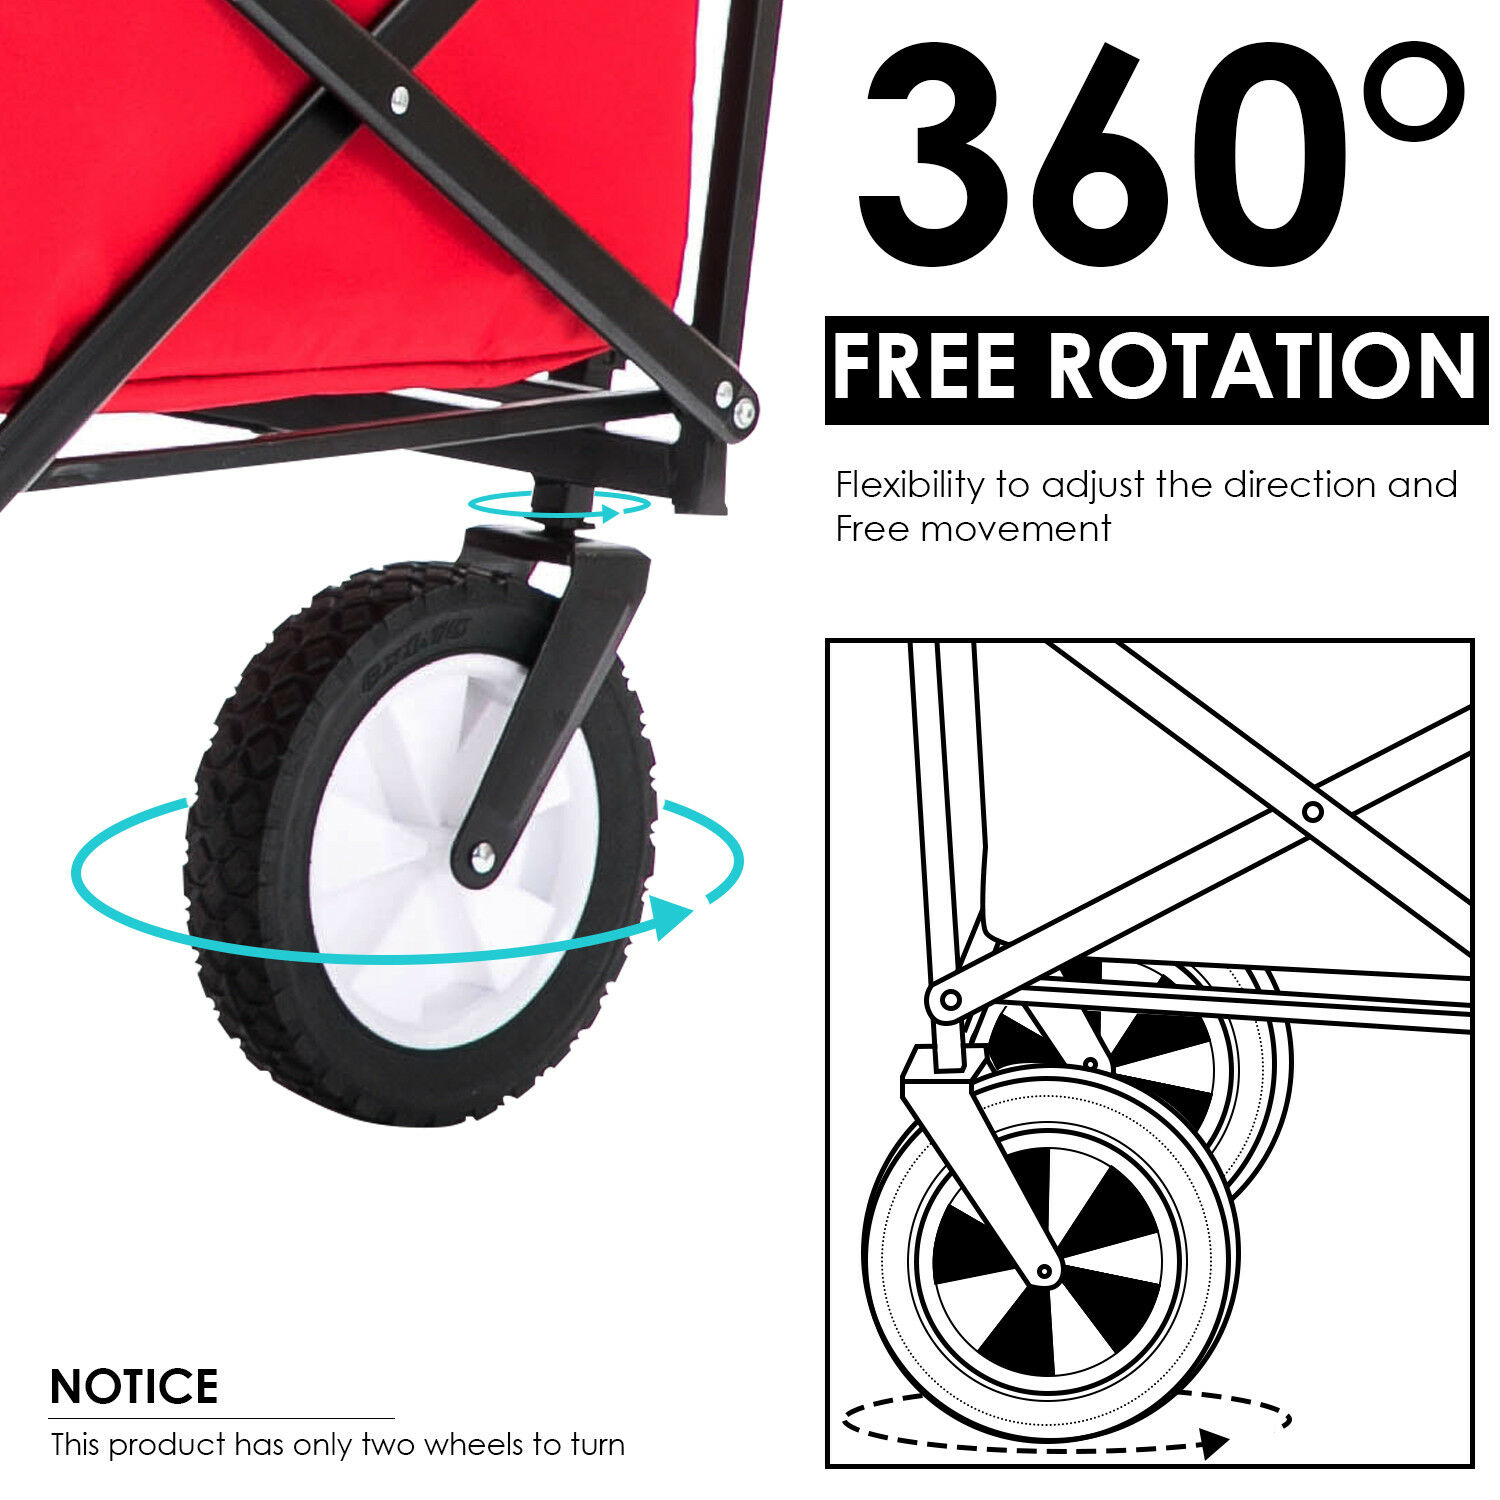 Folding Hand Cart Camping Shopping Trolley Fold Up Storage Box Wheels Foldable ▲